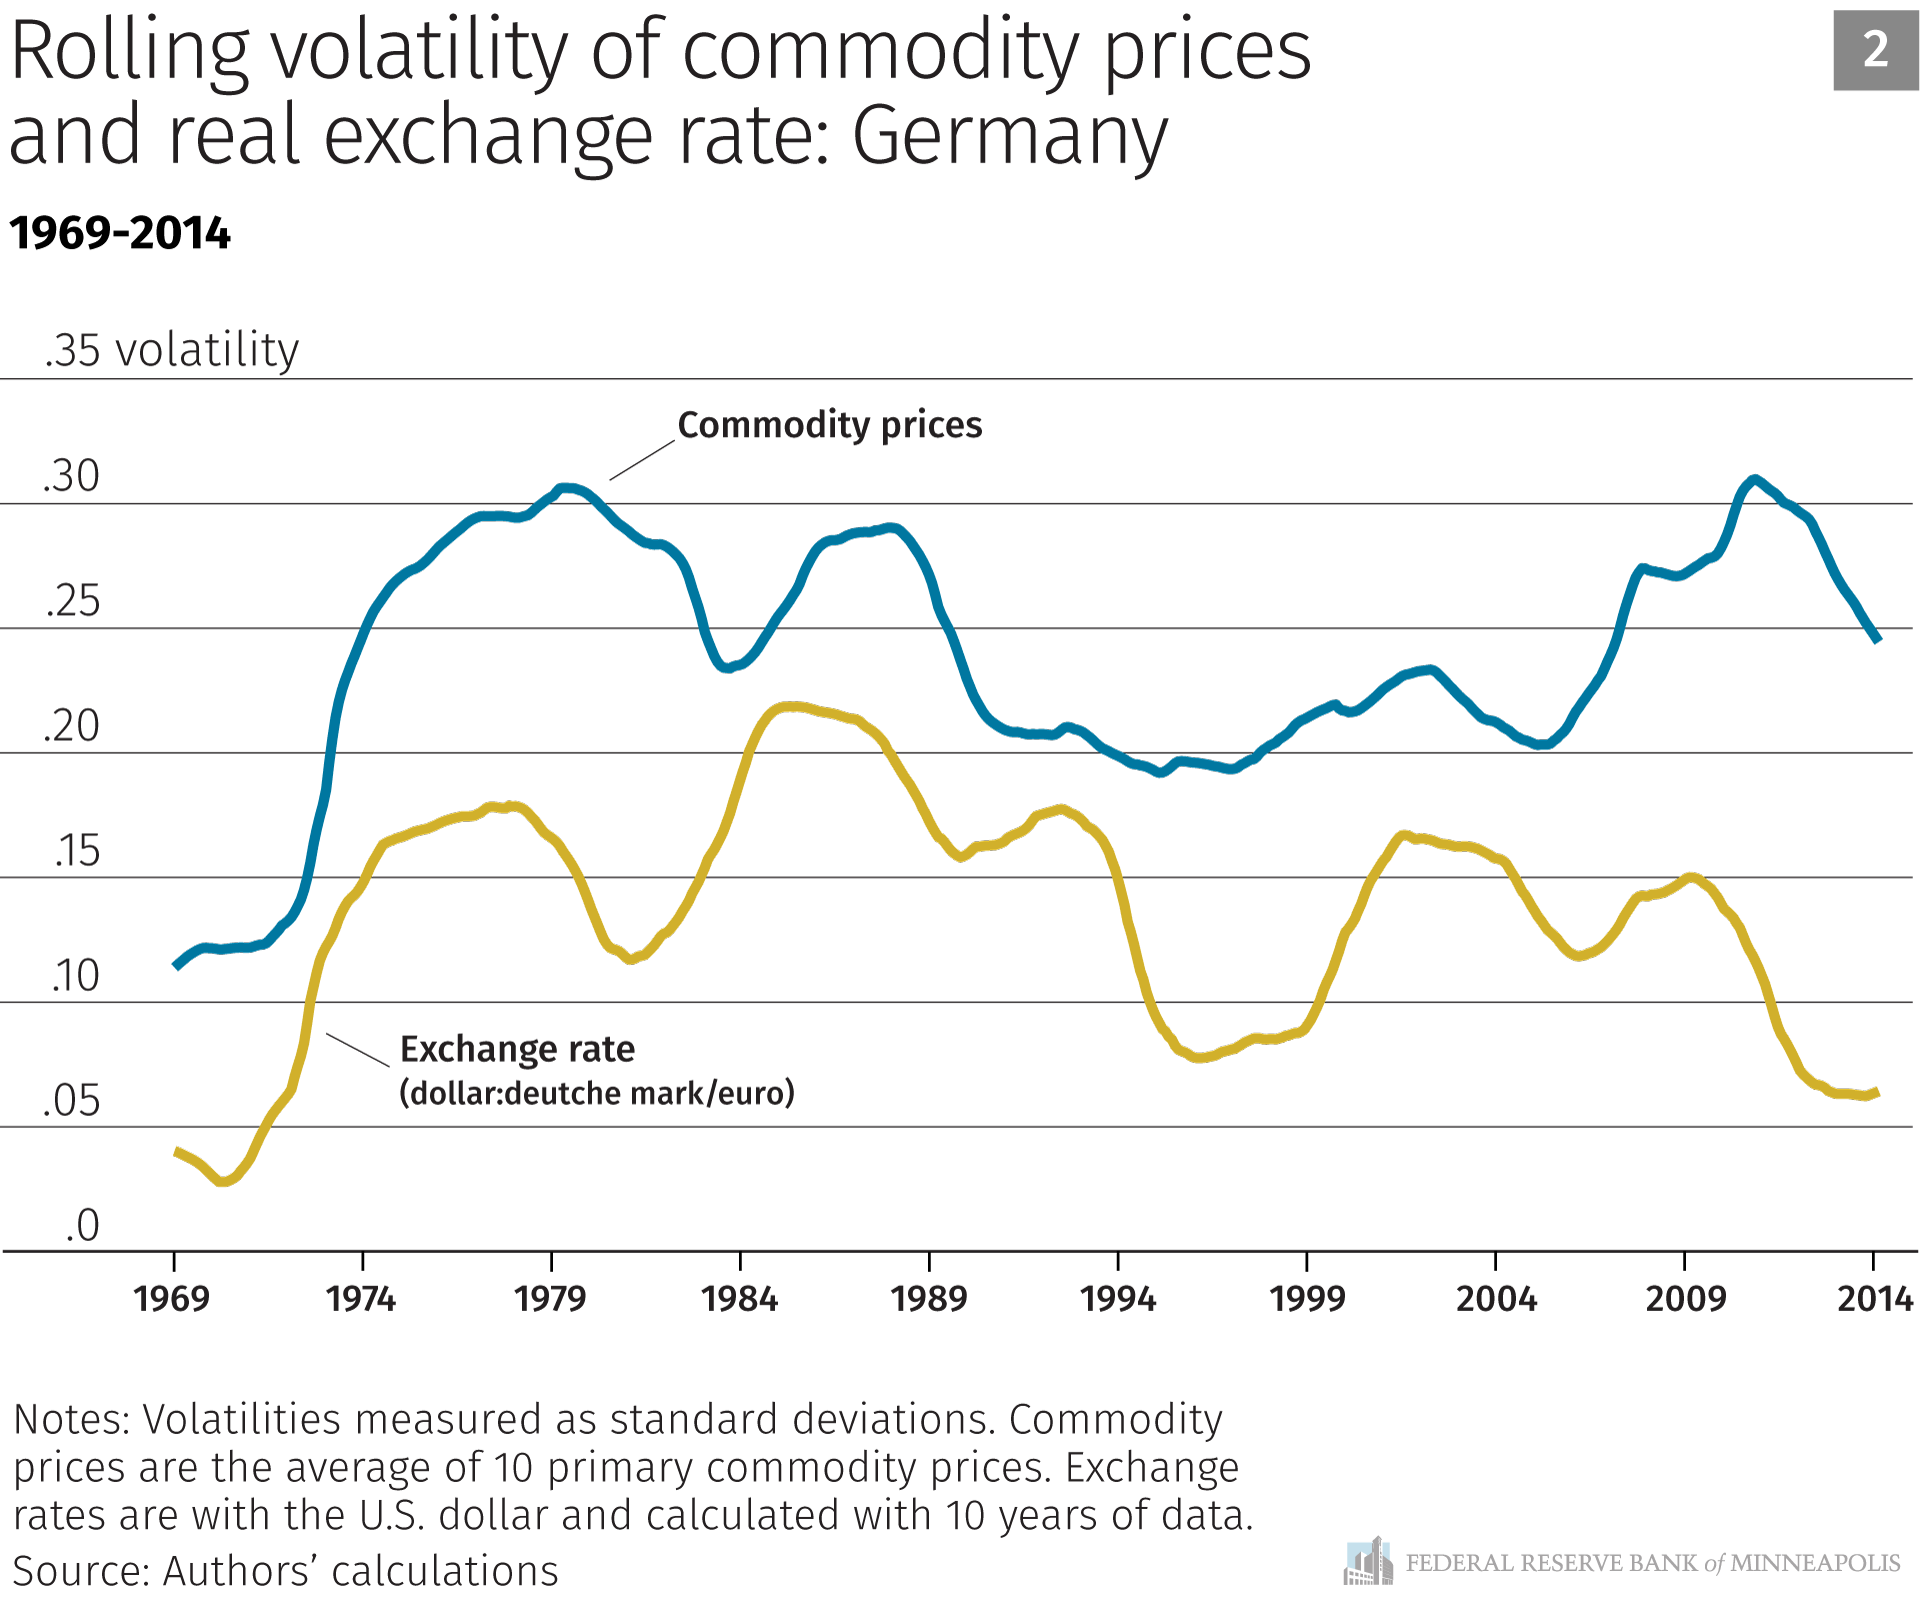 Rolling volatility of commodity prices and real exchange rate: Germany